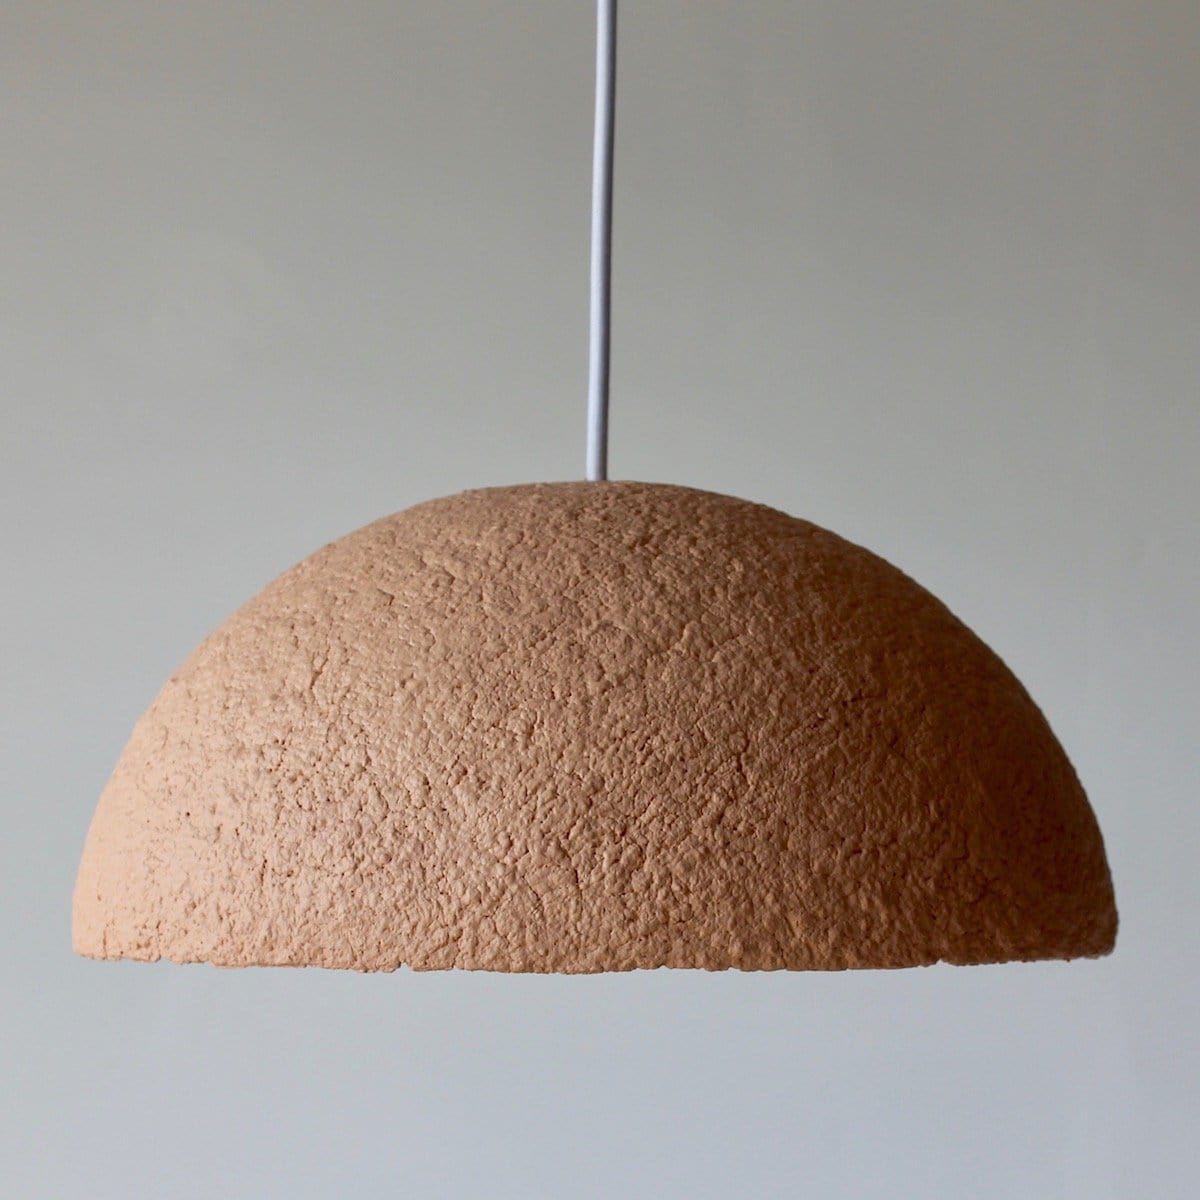 Lunula Pendant - Claypot by Ode to Elma | Shop Lighting | Greenhouse Interiors